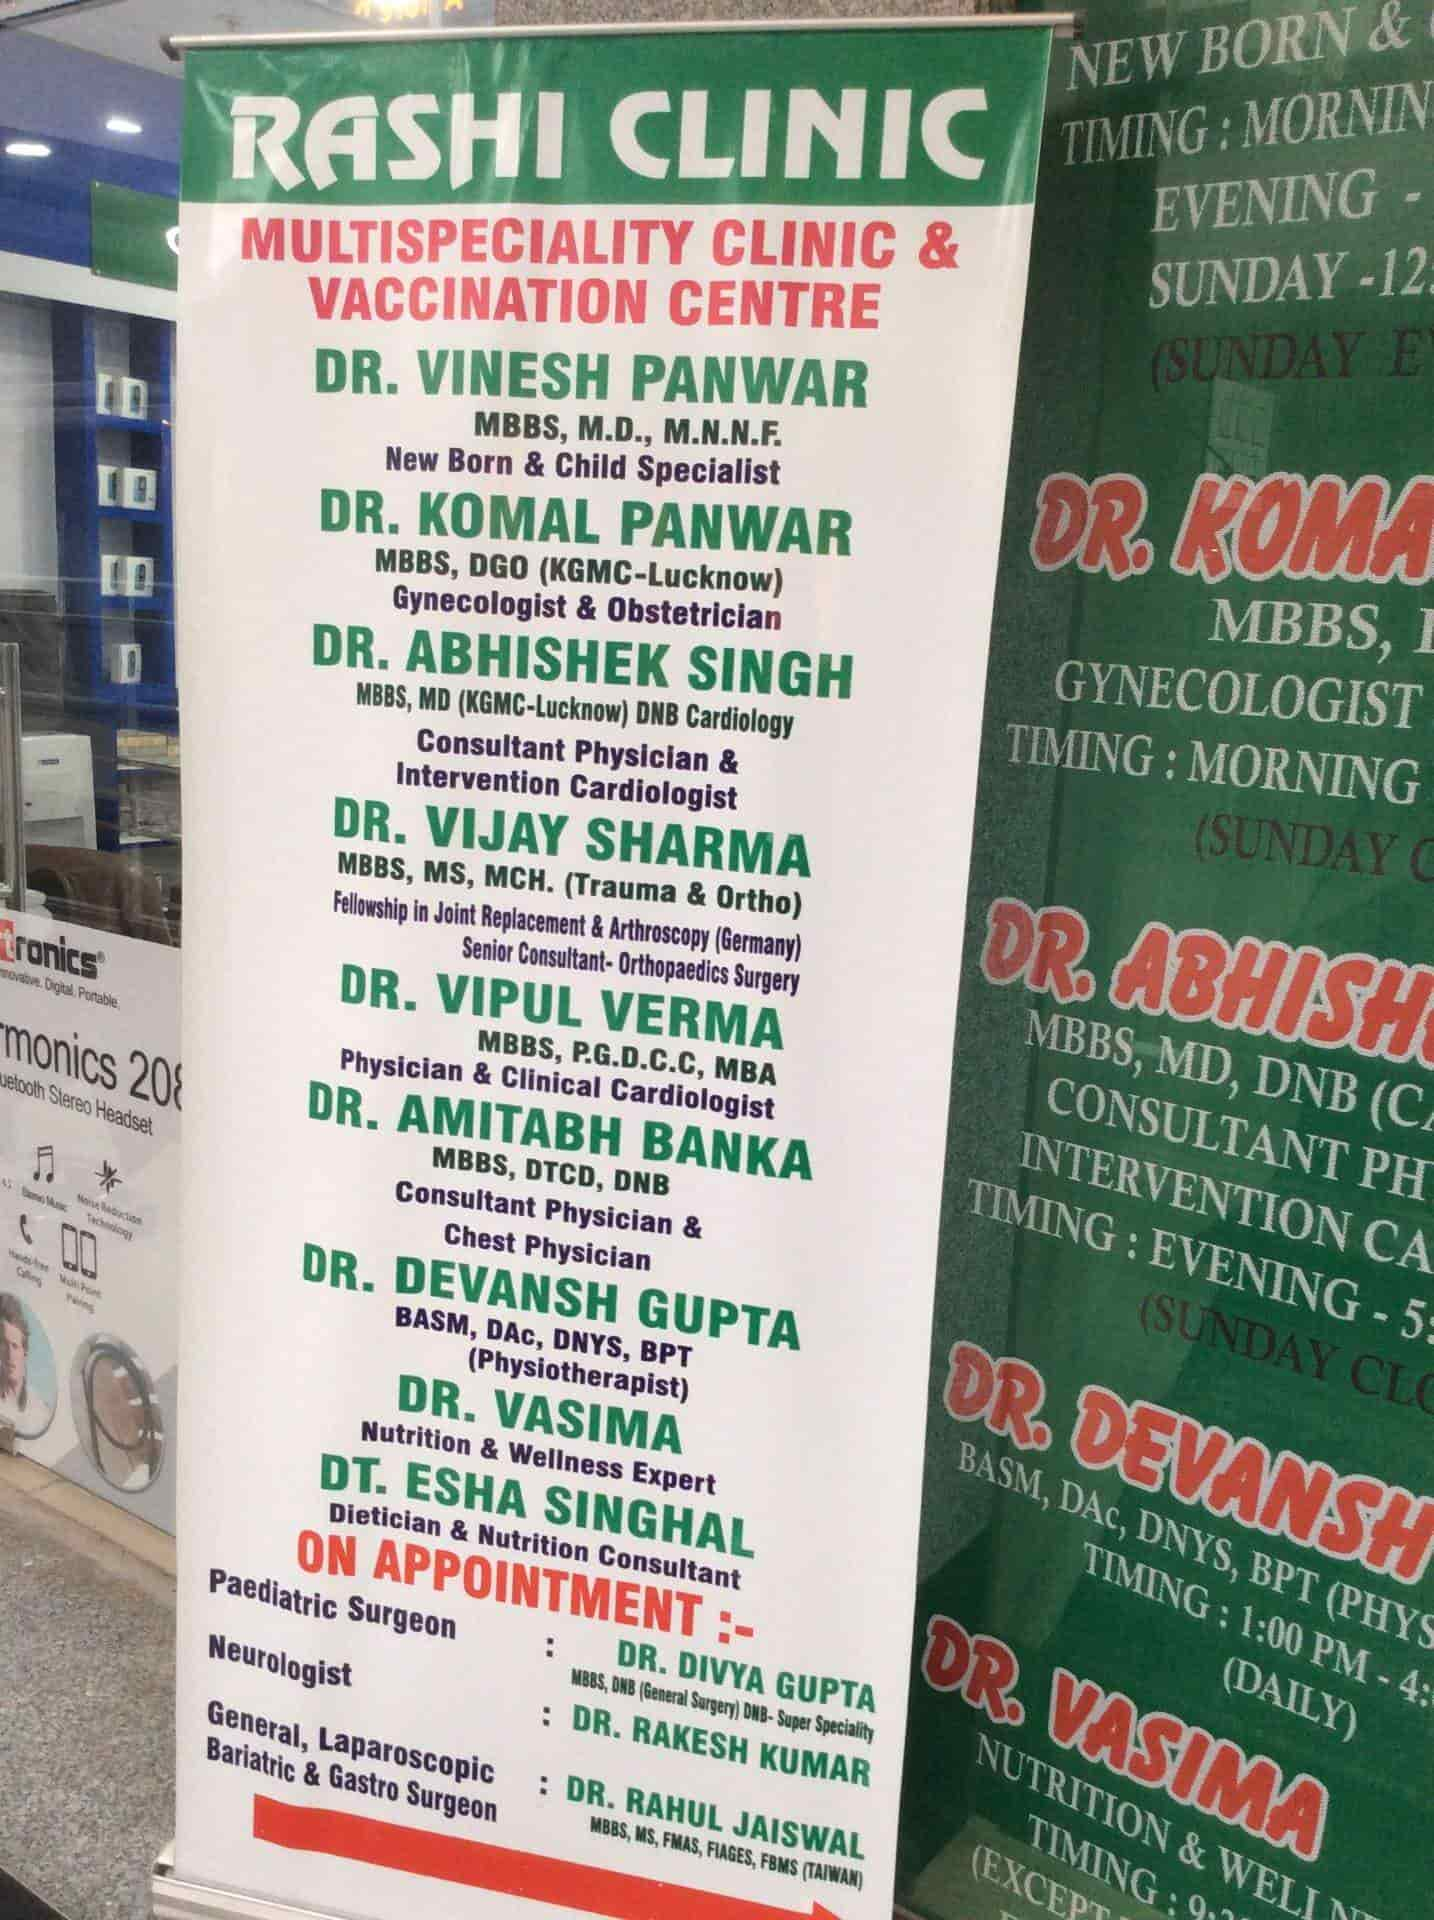 Rashi Clinic Photos, Gaur City 2, Noida- Pictures & Images Gallery